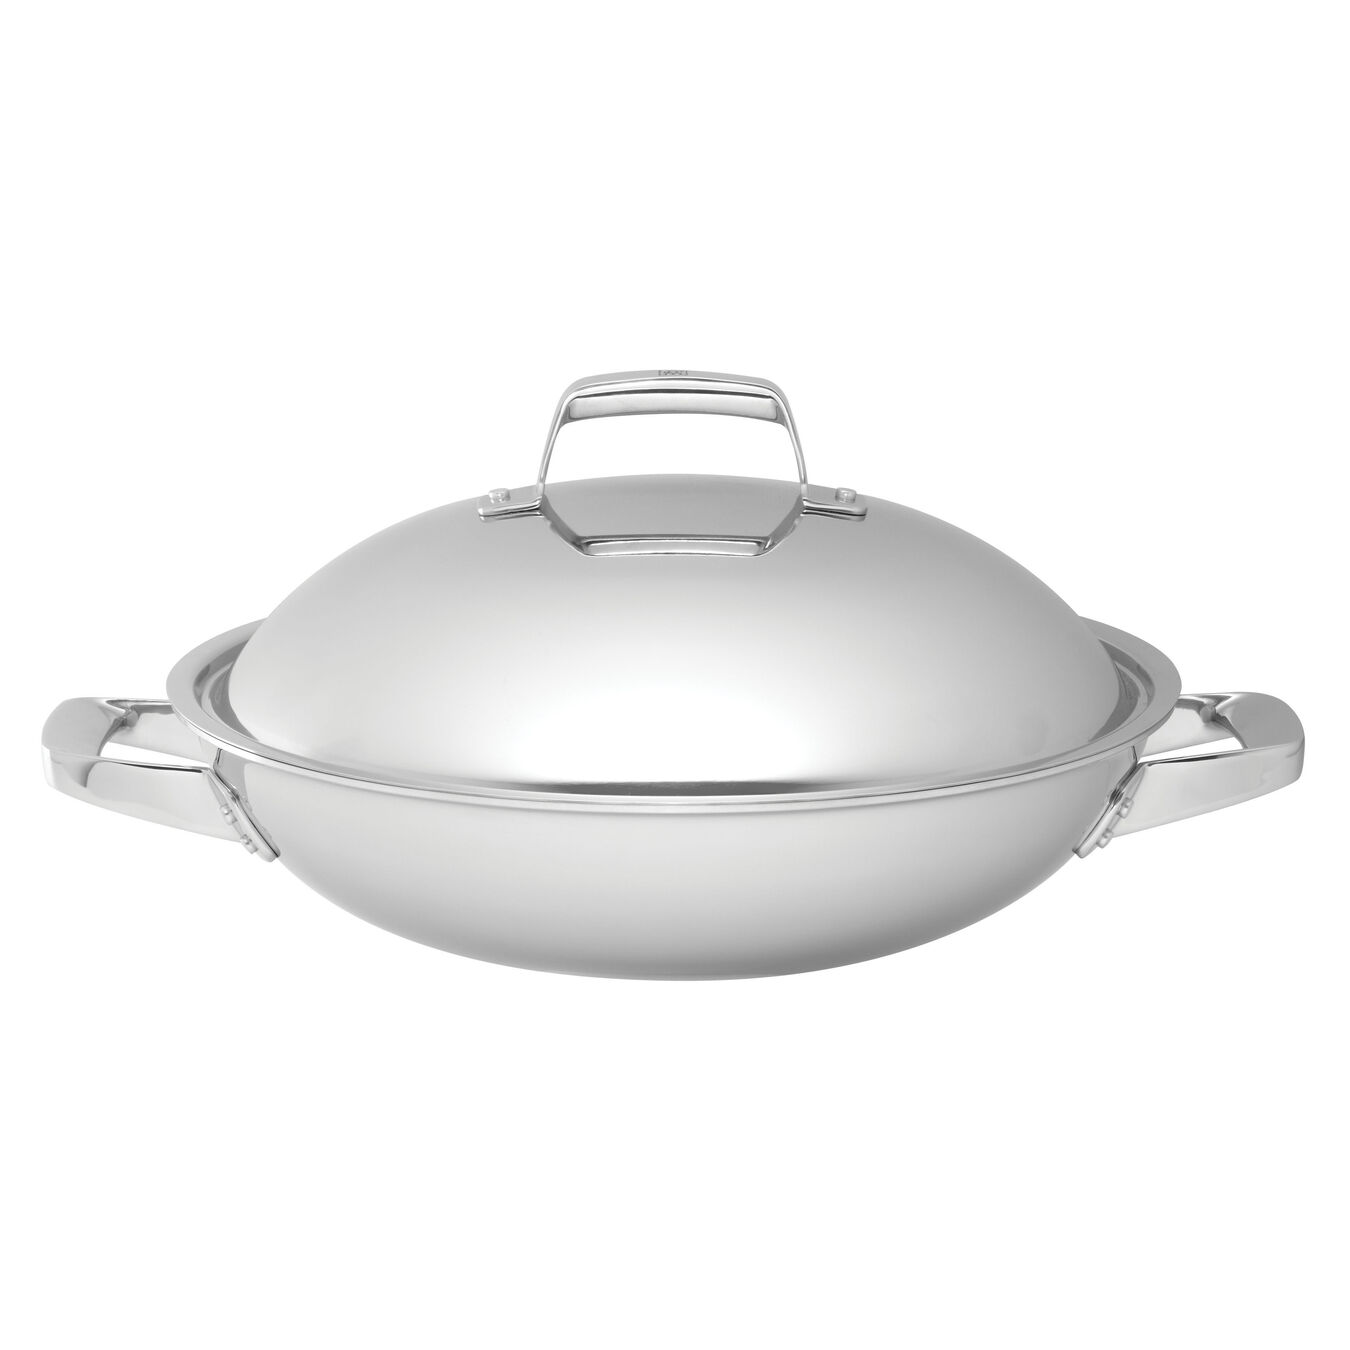 32 cm / 12.5 inch 18/10 Stainless Steel Wok,,large 1